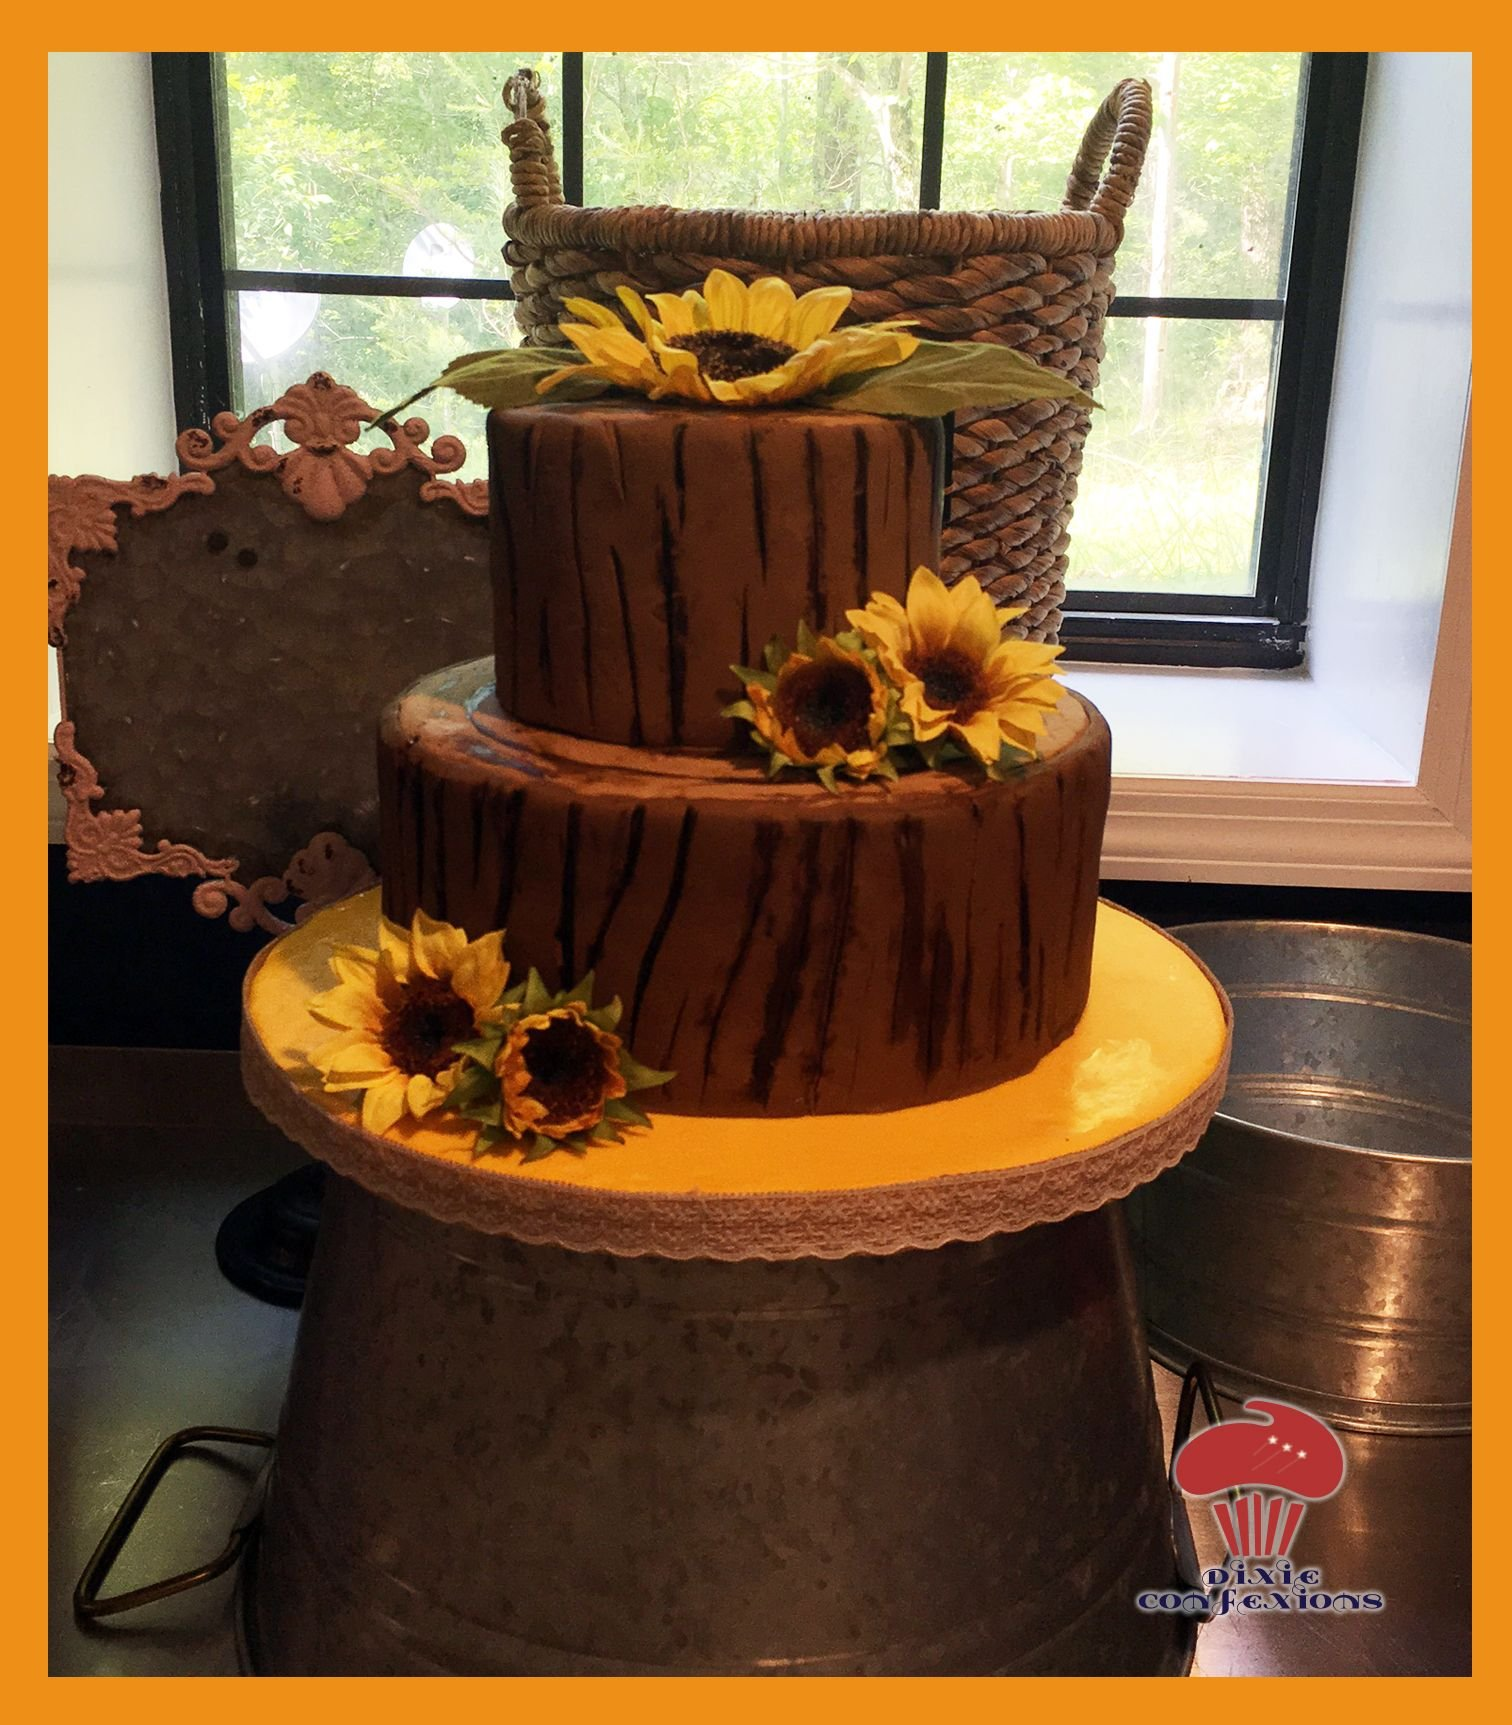 Tree Stump Wedding Cake - Dixie Confexions